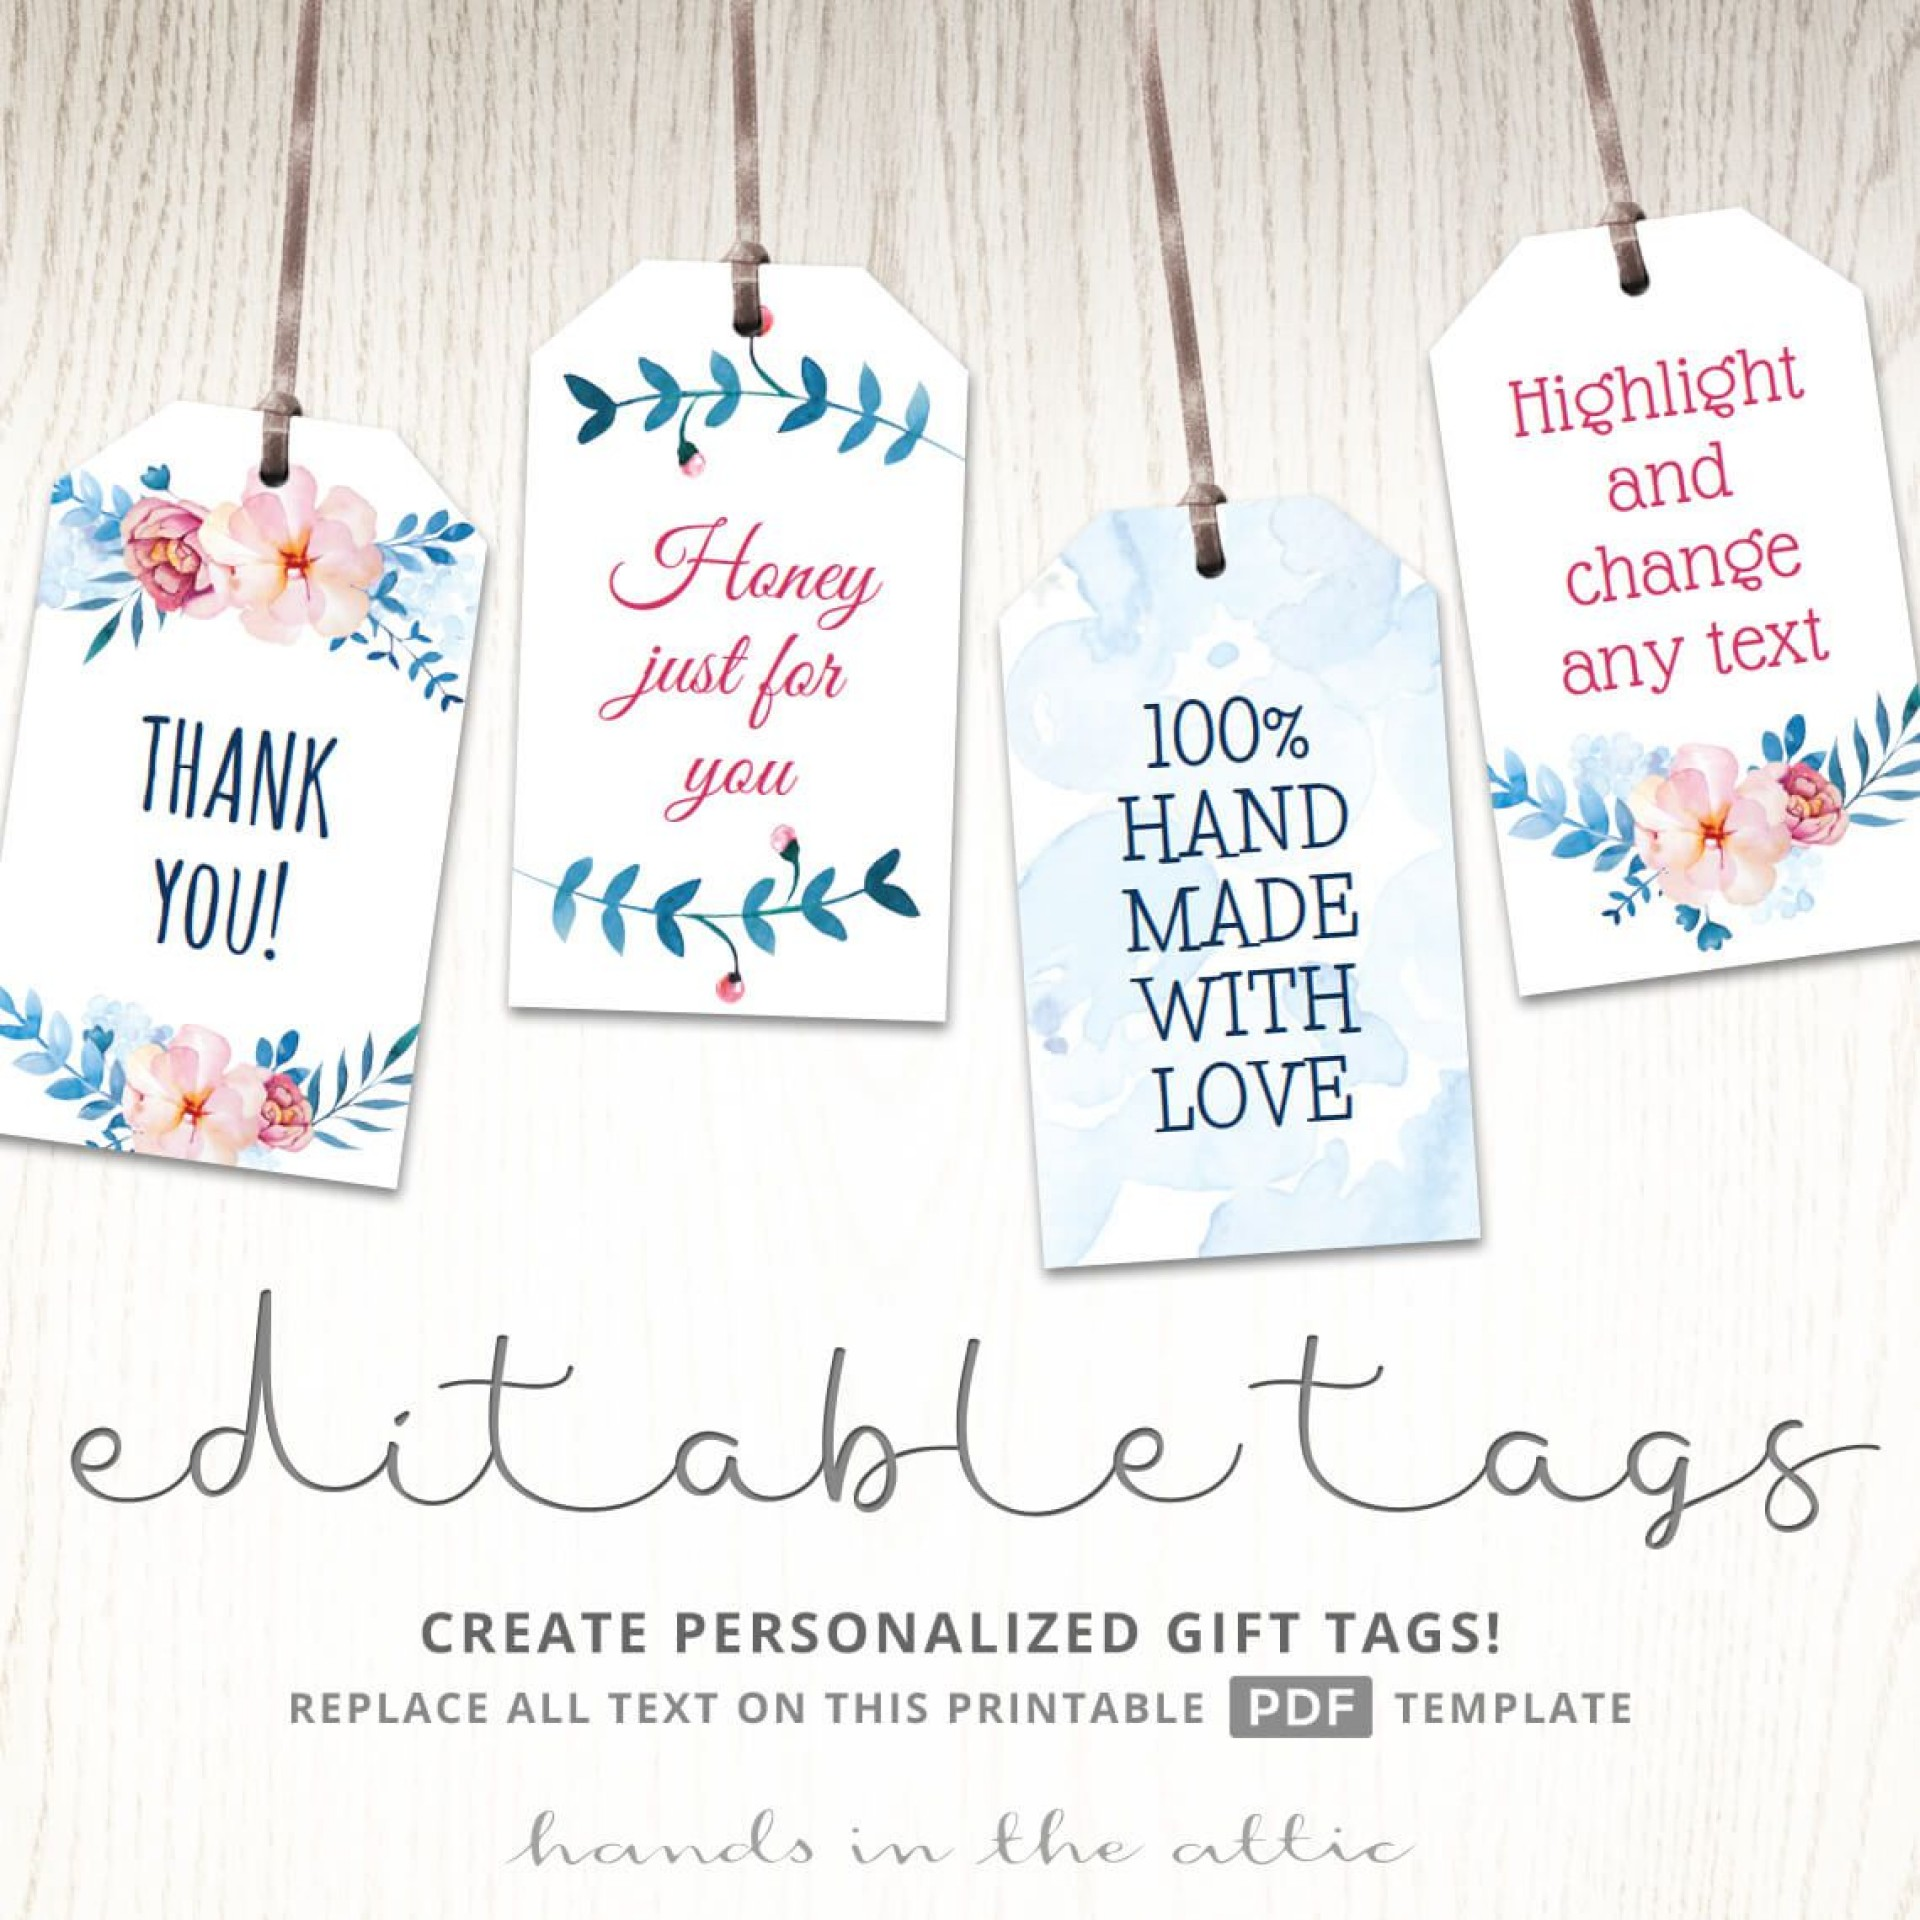 003 Fascinating Wedding Favor Tag Template Example  Templates Editable Free Party Printable1920